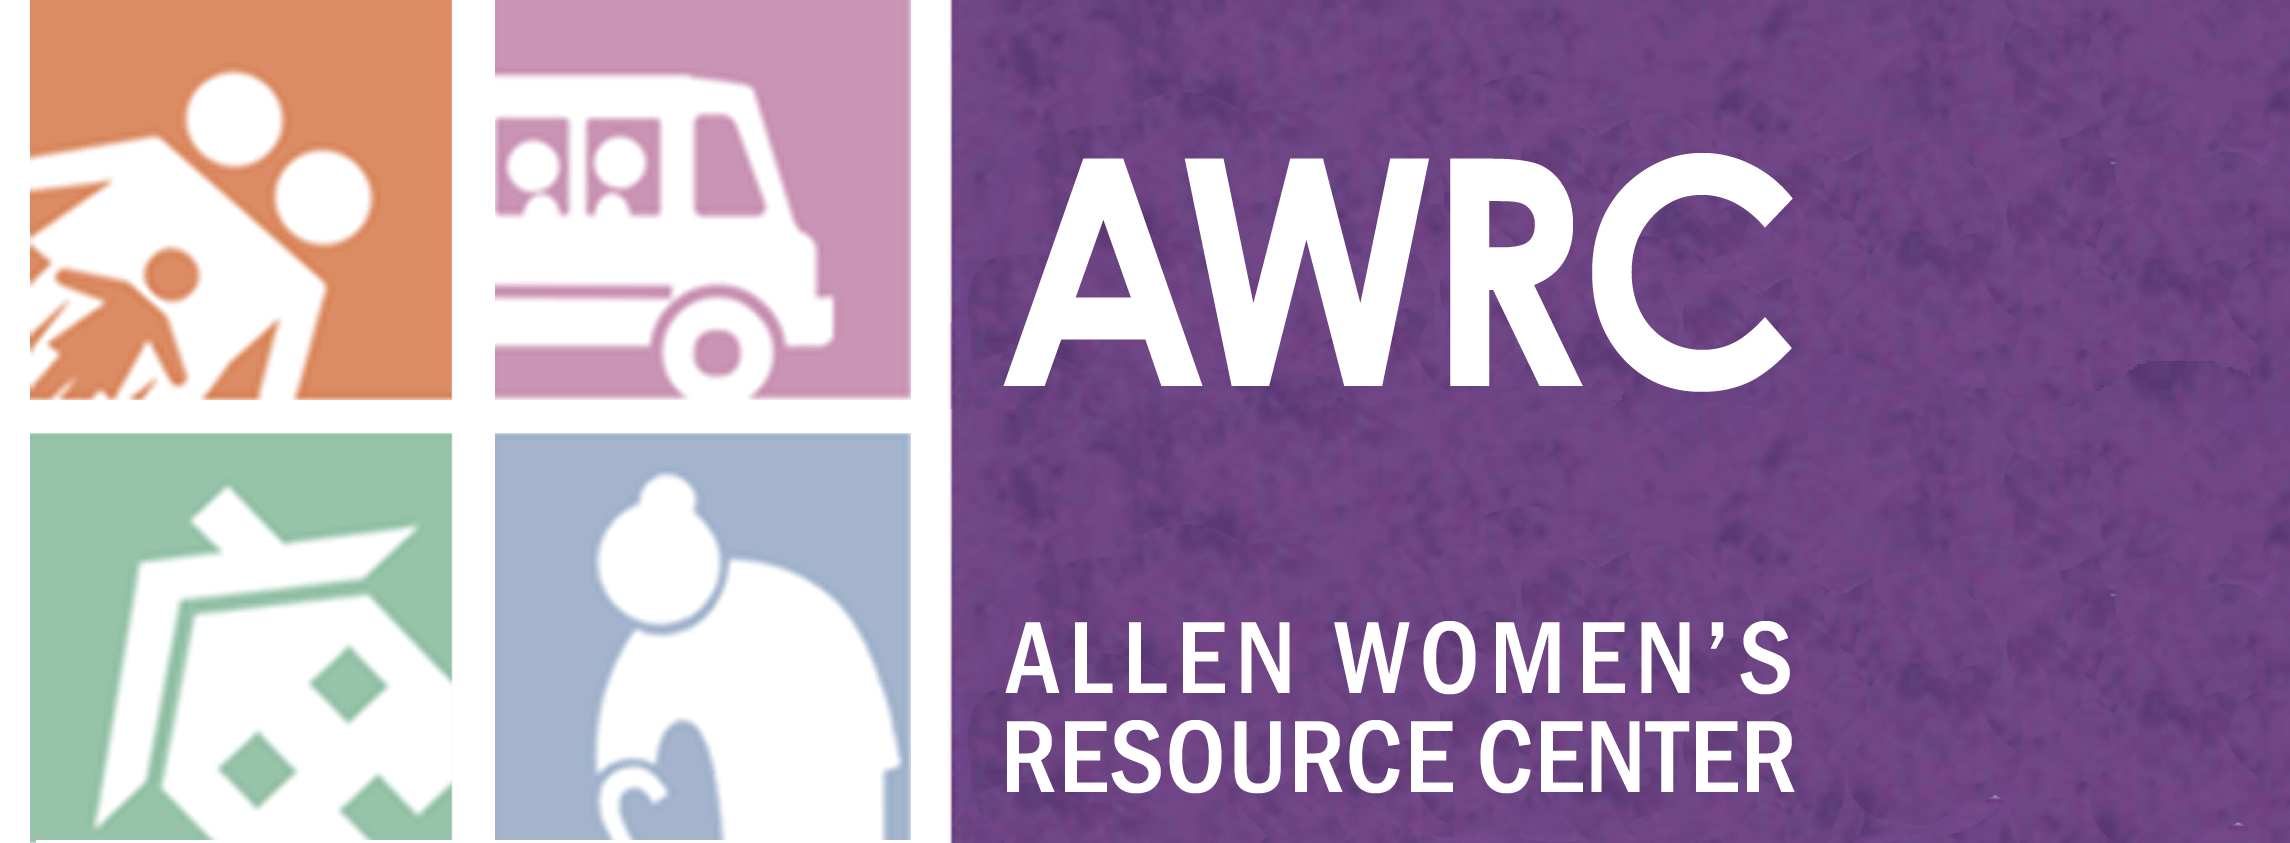 Allen Women's Resource Center